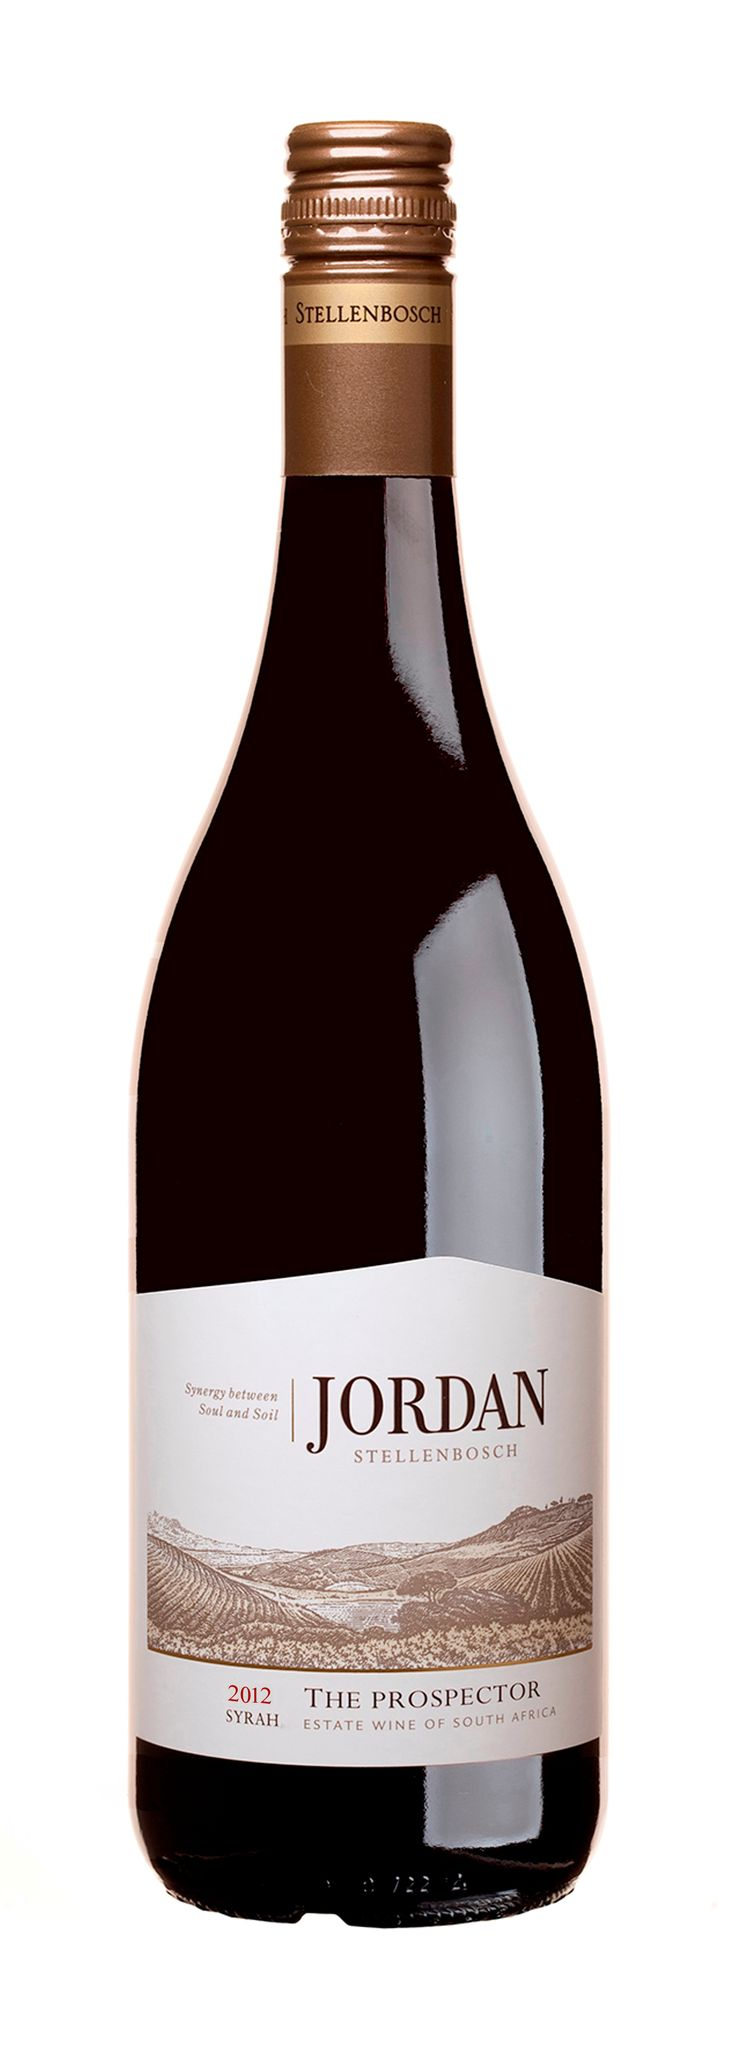 100% Syrah - The Prospector - The gold rush of the 1800's led to the discovery of tin in the gravels underlying the Syrah vineyards at Jordan. These minerals lend particular characteristics to this Syrah with its rich, dense, dark chocolate, black fruit and fynbos flavours interlaced with white pepper. Barrel maturation adds toasty nuances to the richly textured structure.